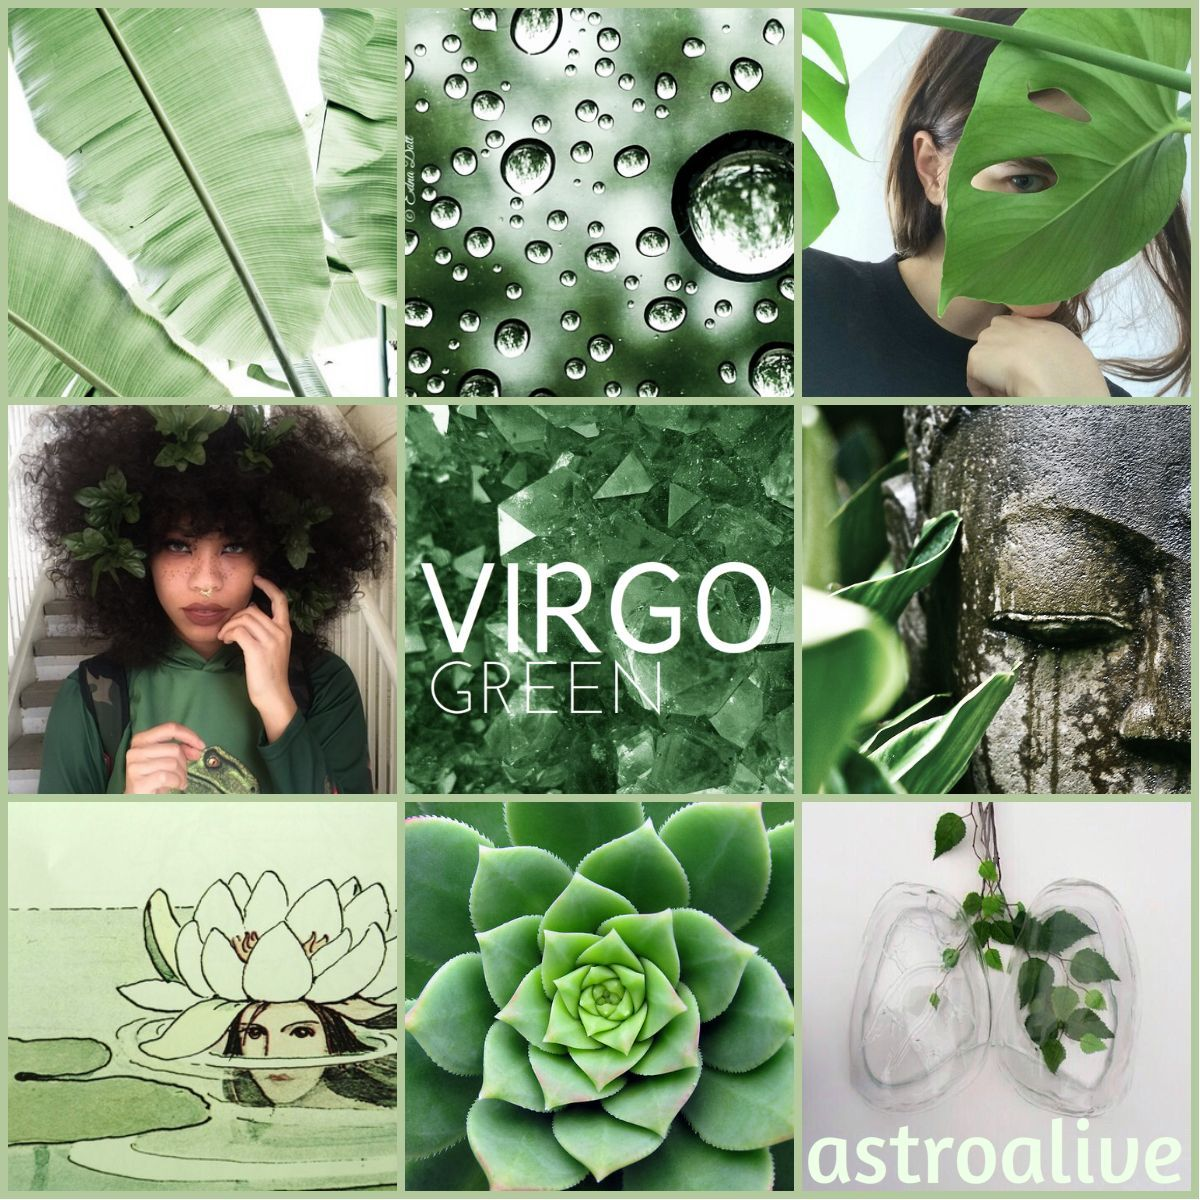 #perseverancegreen #dependability #greenpositive #protection #considered #astrology #aesthetic #service #symbols #healing #restful #health #vigor #color #virgoAstrology Color Aesthetic: Virgo GreenPositive Symbols: health, service, vigor, dependability, protection, perseveranceGreen is considered healing as it is the most restful color for human eyes and... #astrologyaesthetic